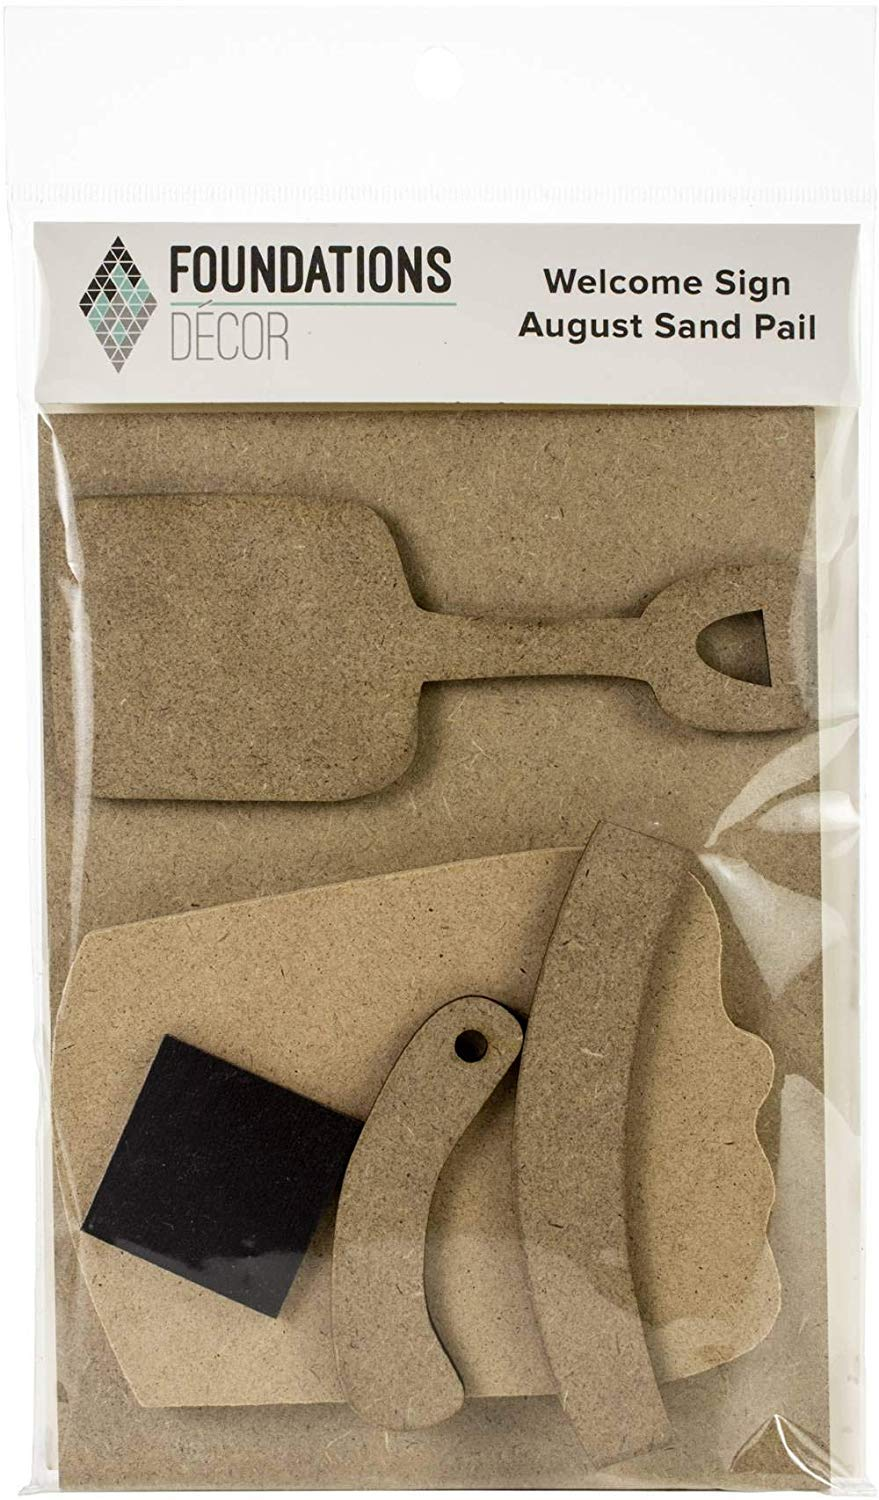 Apple Foundations Decor Welcome Sign Kits-September